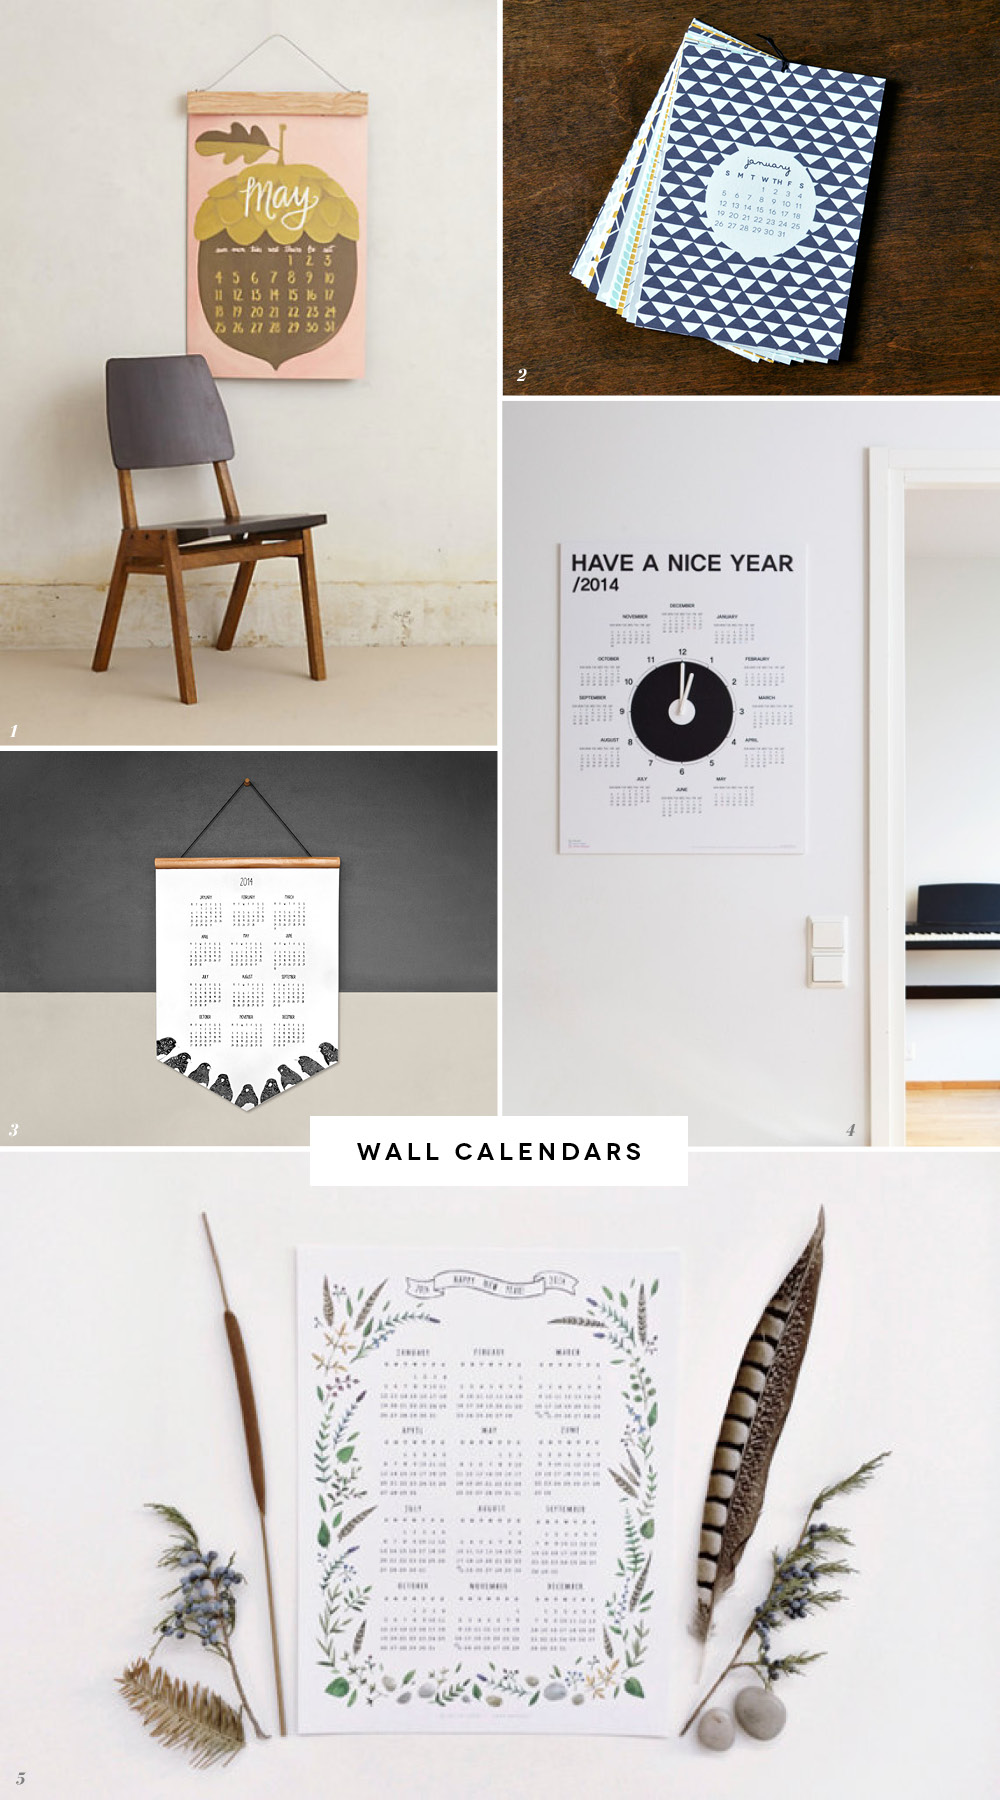 1. Oversized Wall Calendar by 1Canoe2 // 2. Illustrated Wall Calendar by Retro Menagerie // 3. Robin Wall Calendar by The Paperbird Society // 4. What Time Is It Wall Calendar by Dubu Dumo // 5. Botanical Calendar by Miles of Light